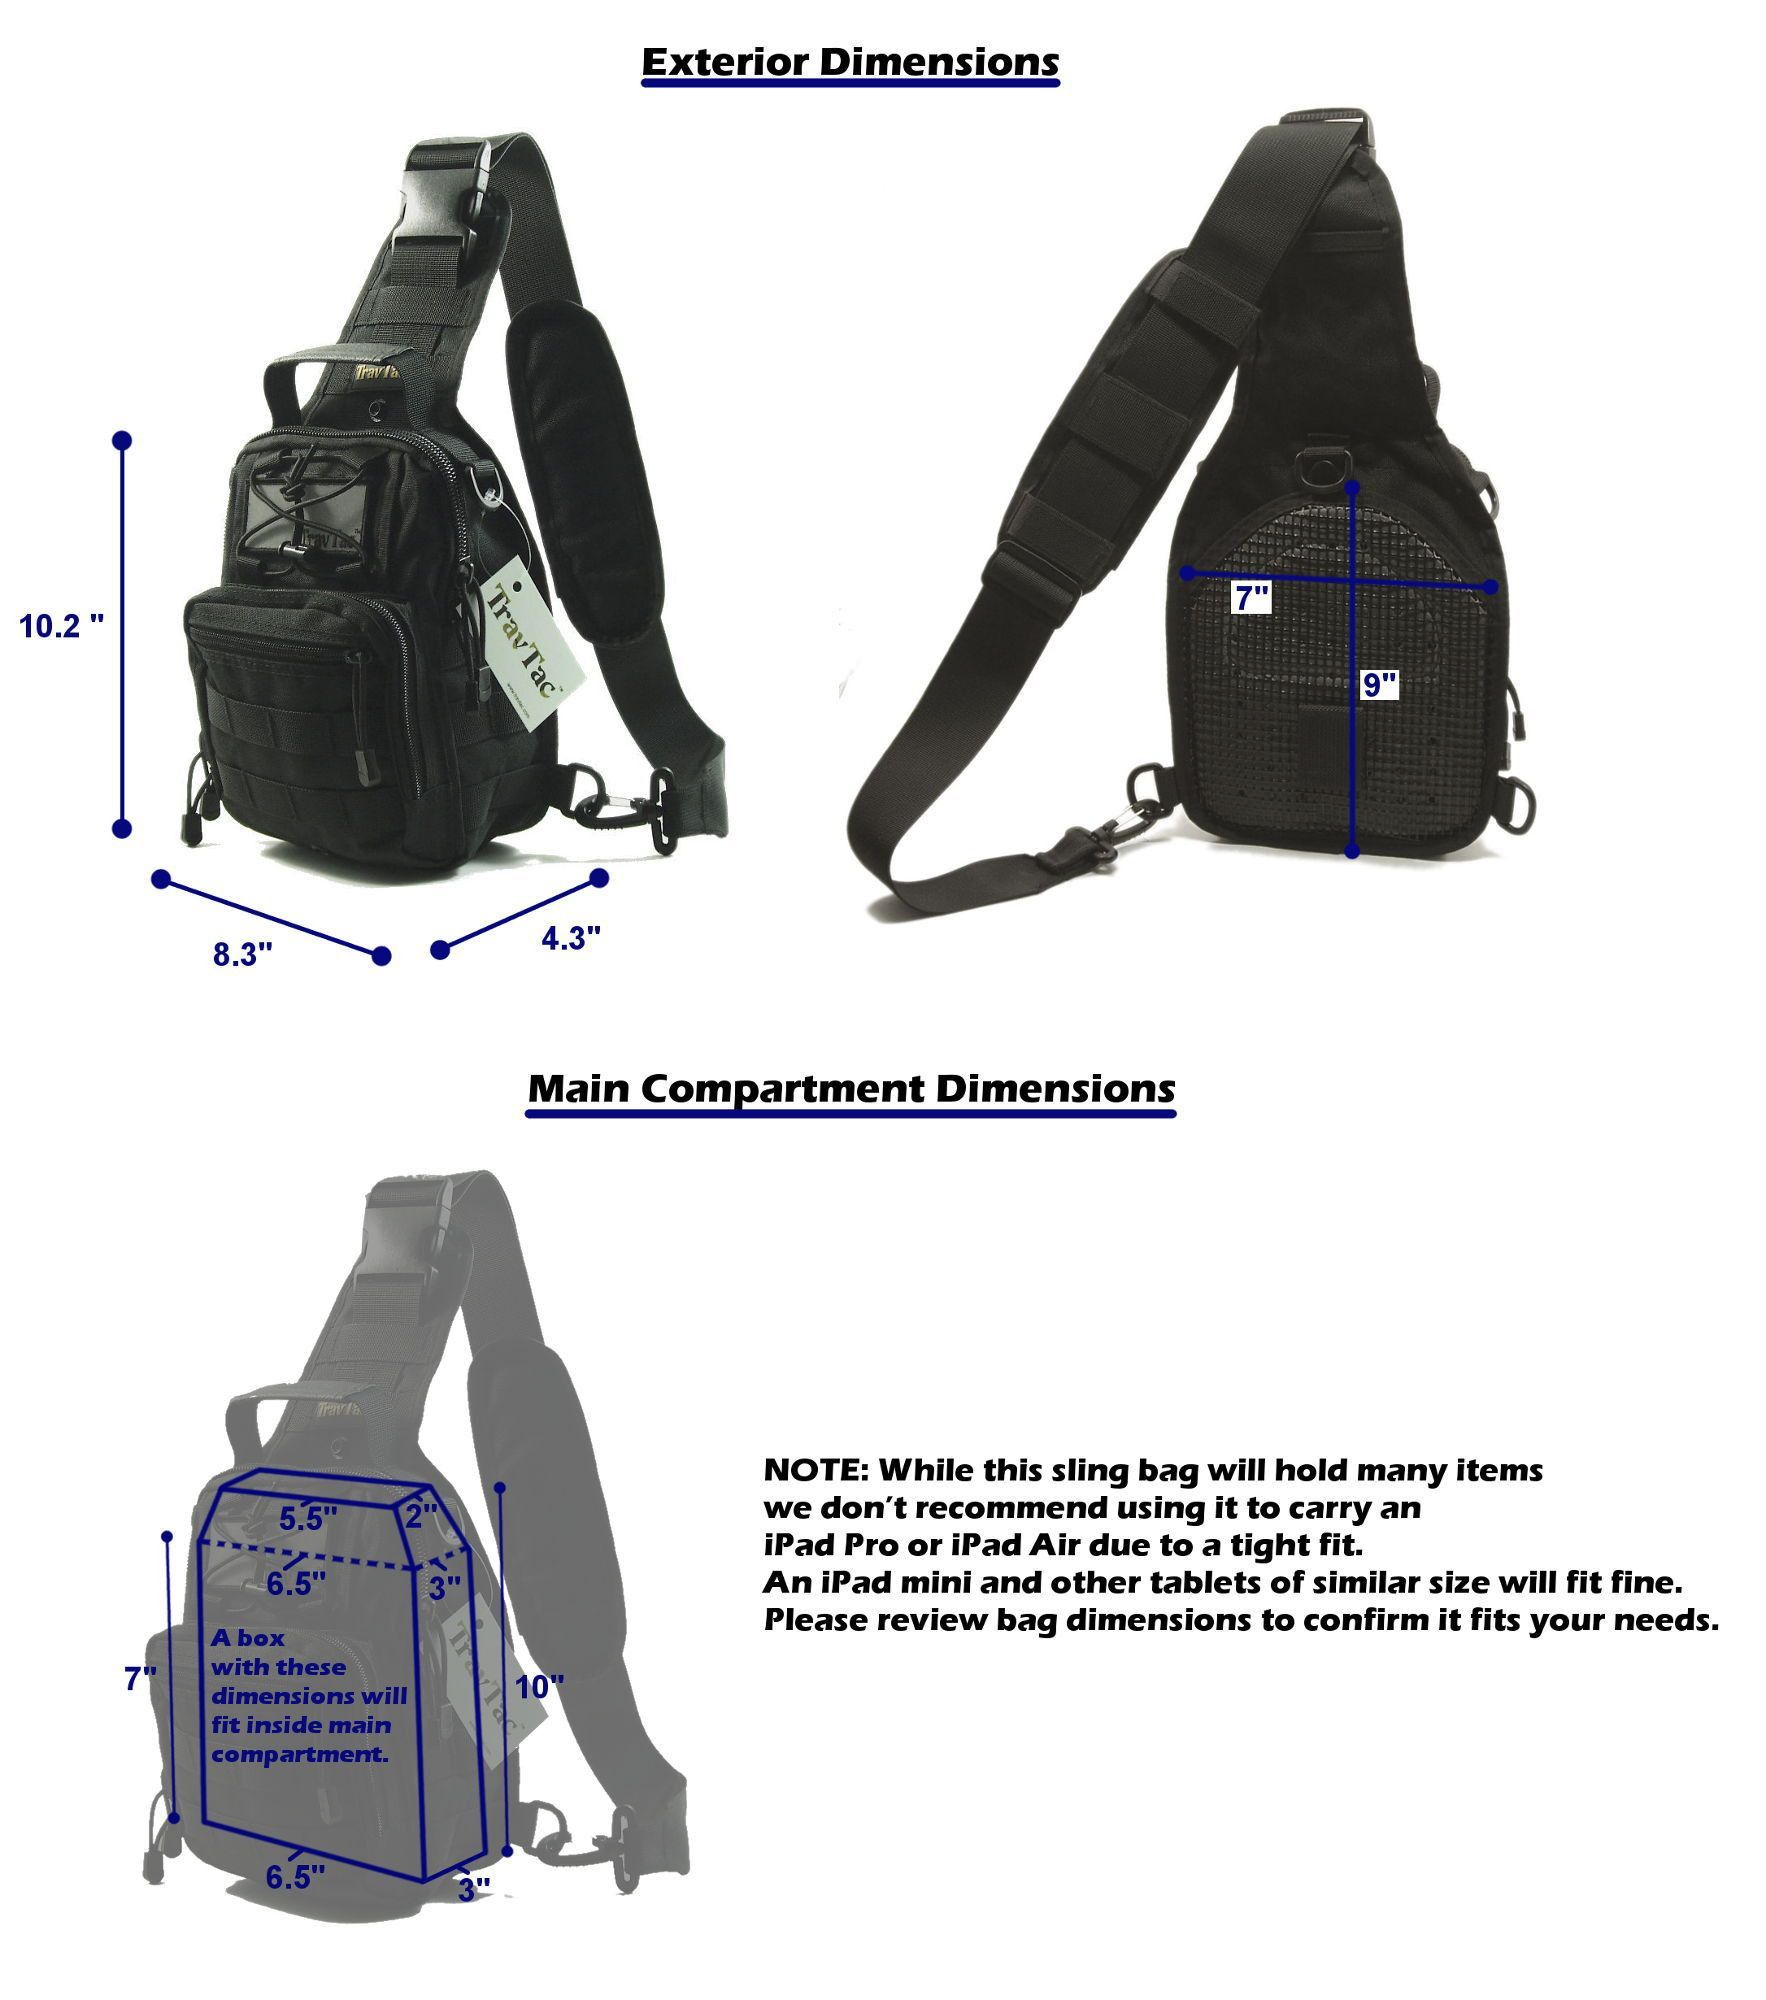 958b27f1e8 Compact Versatile Bag used for  Everyday Carry   Concealed Carry   Search  and Rescue